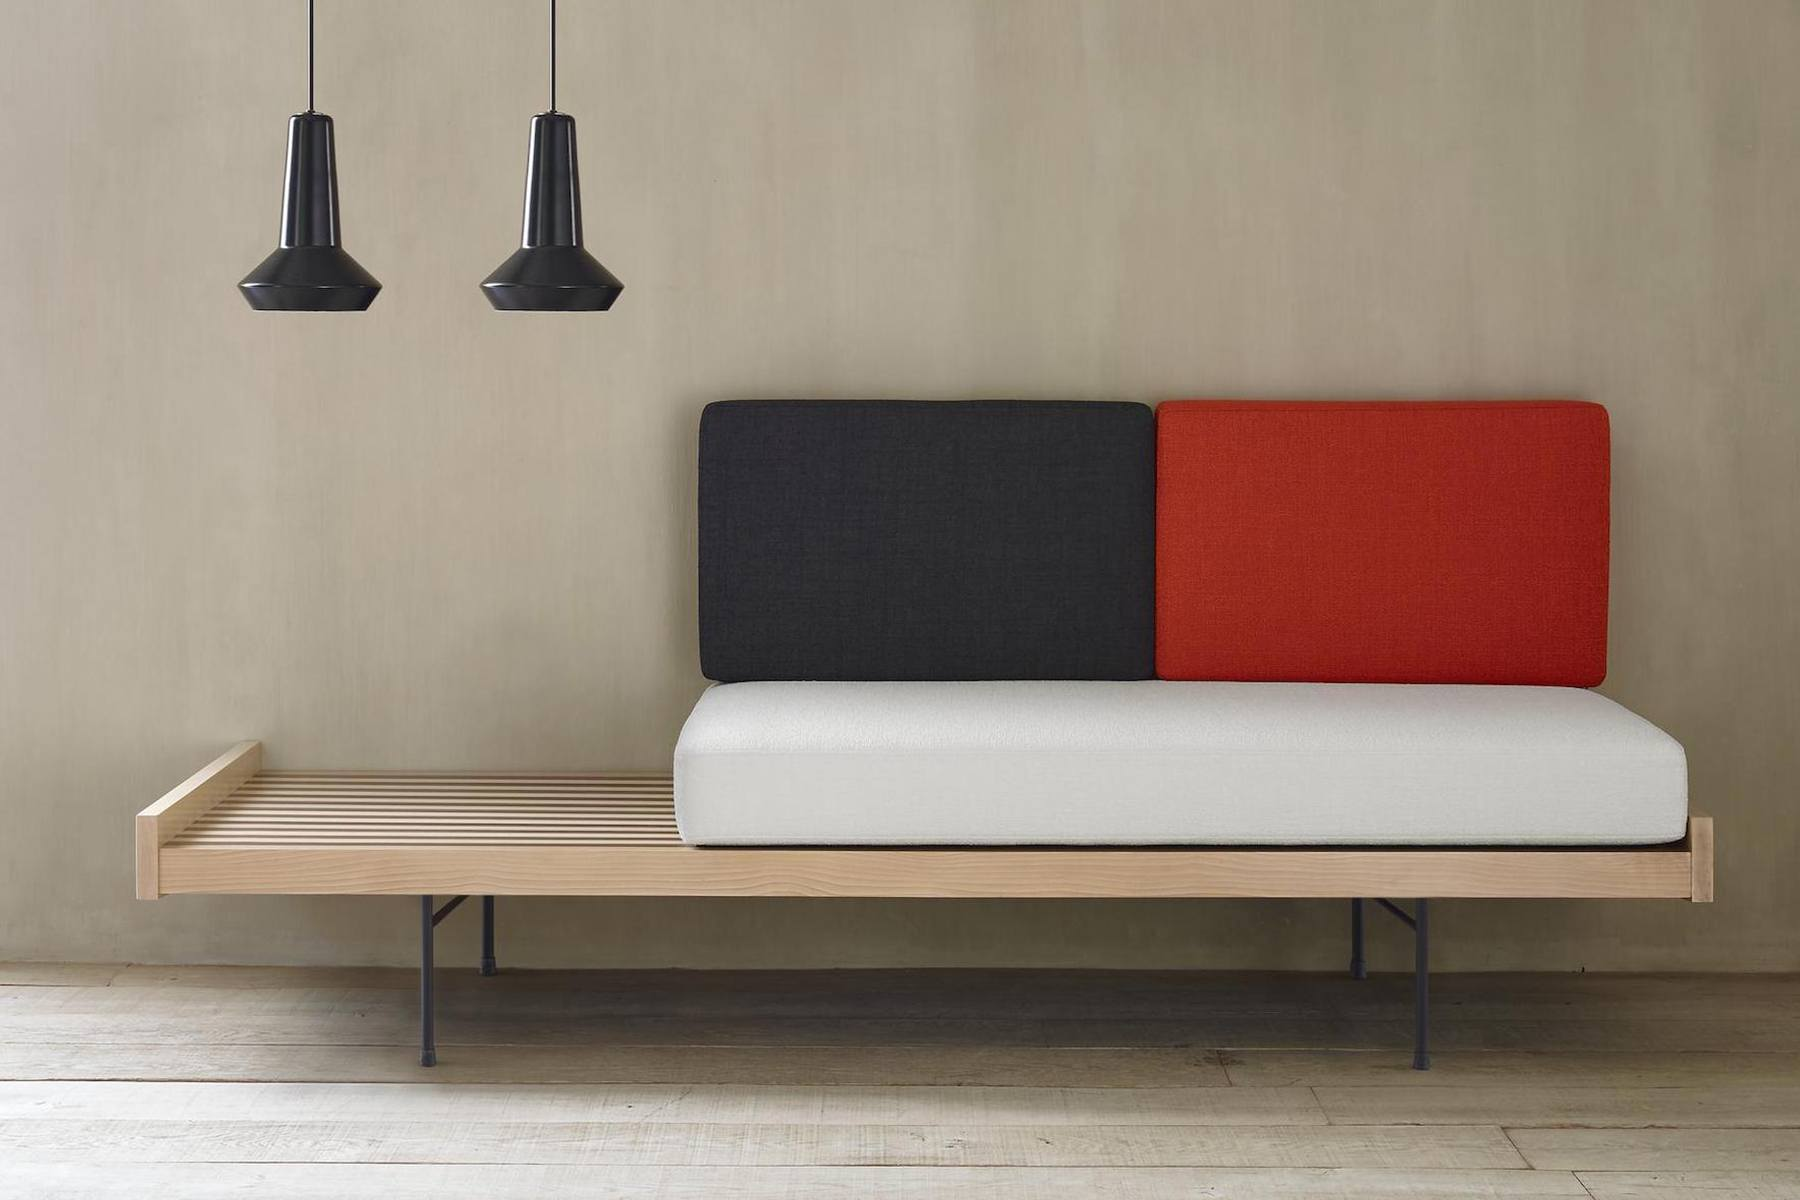 Ligne Roset Revisits 1950s Nordic Design With The Recreation Of Pierre Paulin's Iconic...